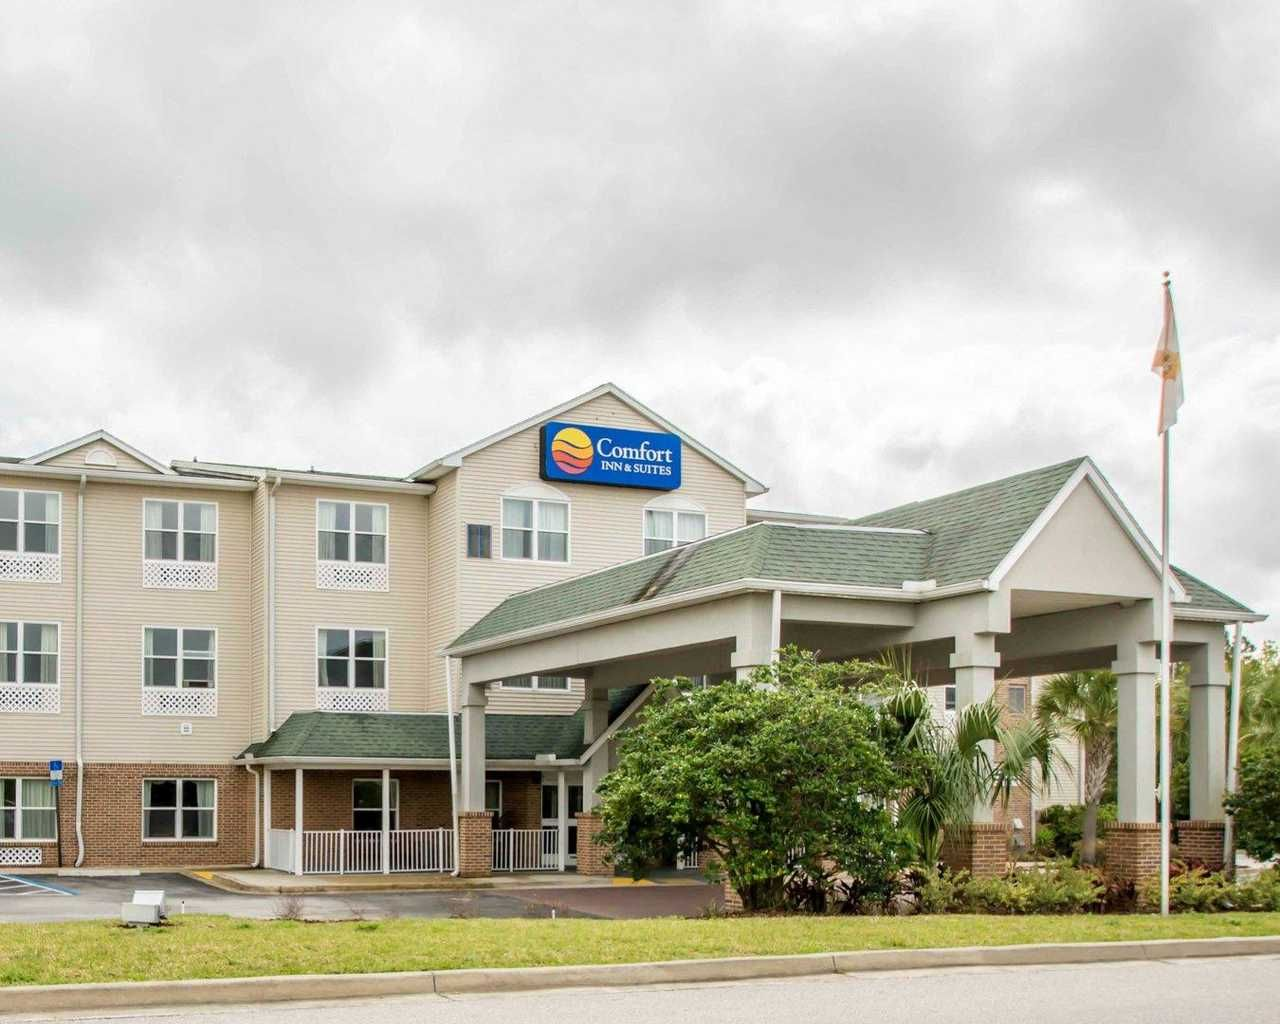 Searching For Ideal Hotels In St Augustine Beach Fl Our Comfort Inn Suites I 95 Outlet Mall Hotel In Comfort Inn And Suites Beach Hotel Room Downtown Hotels